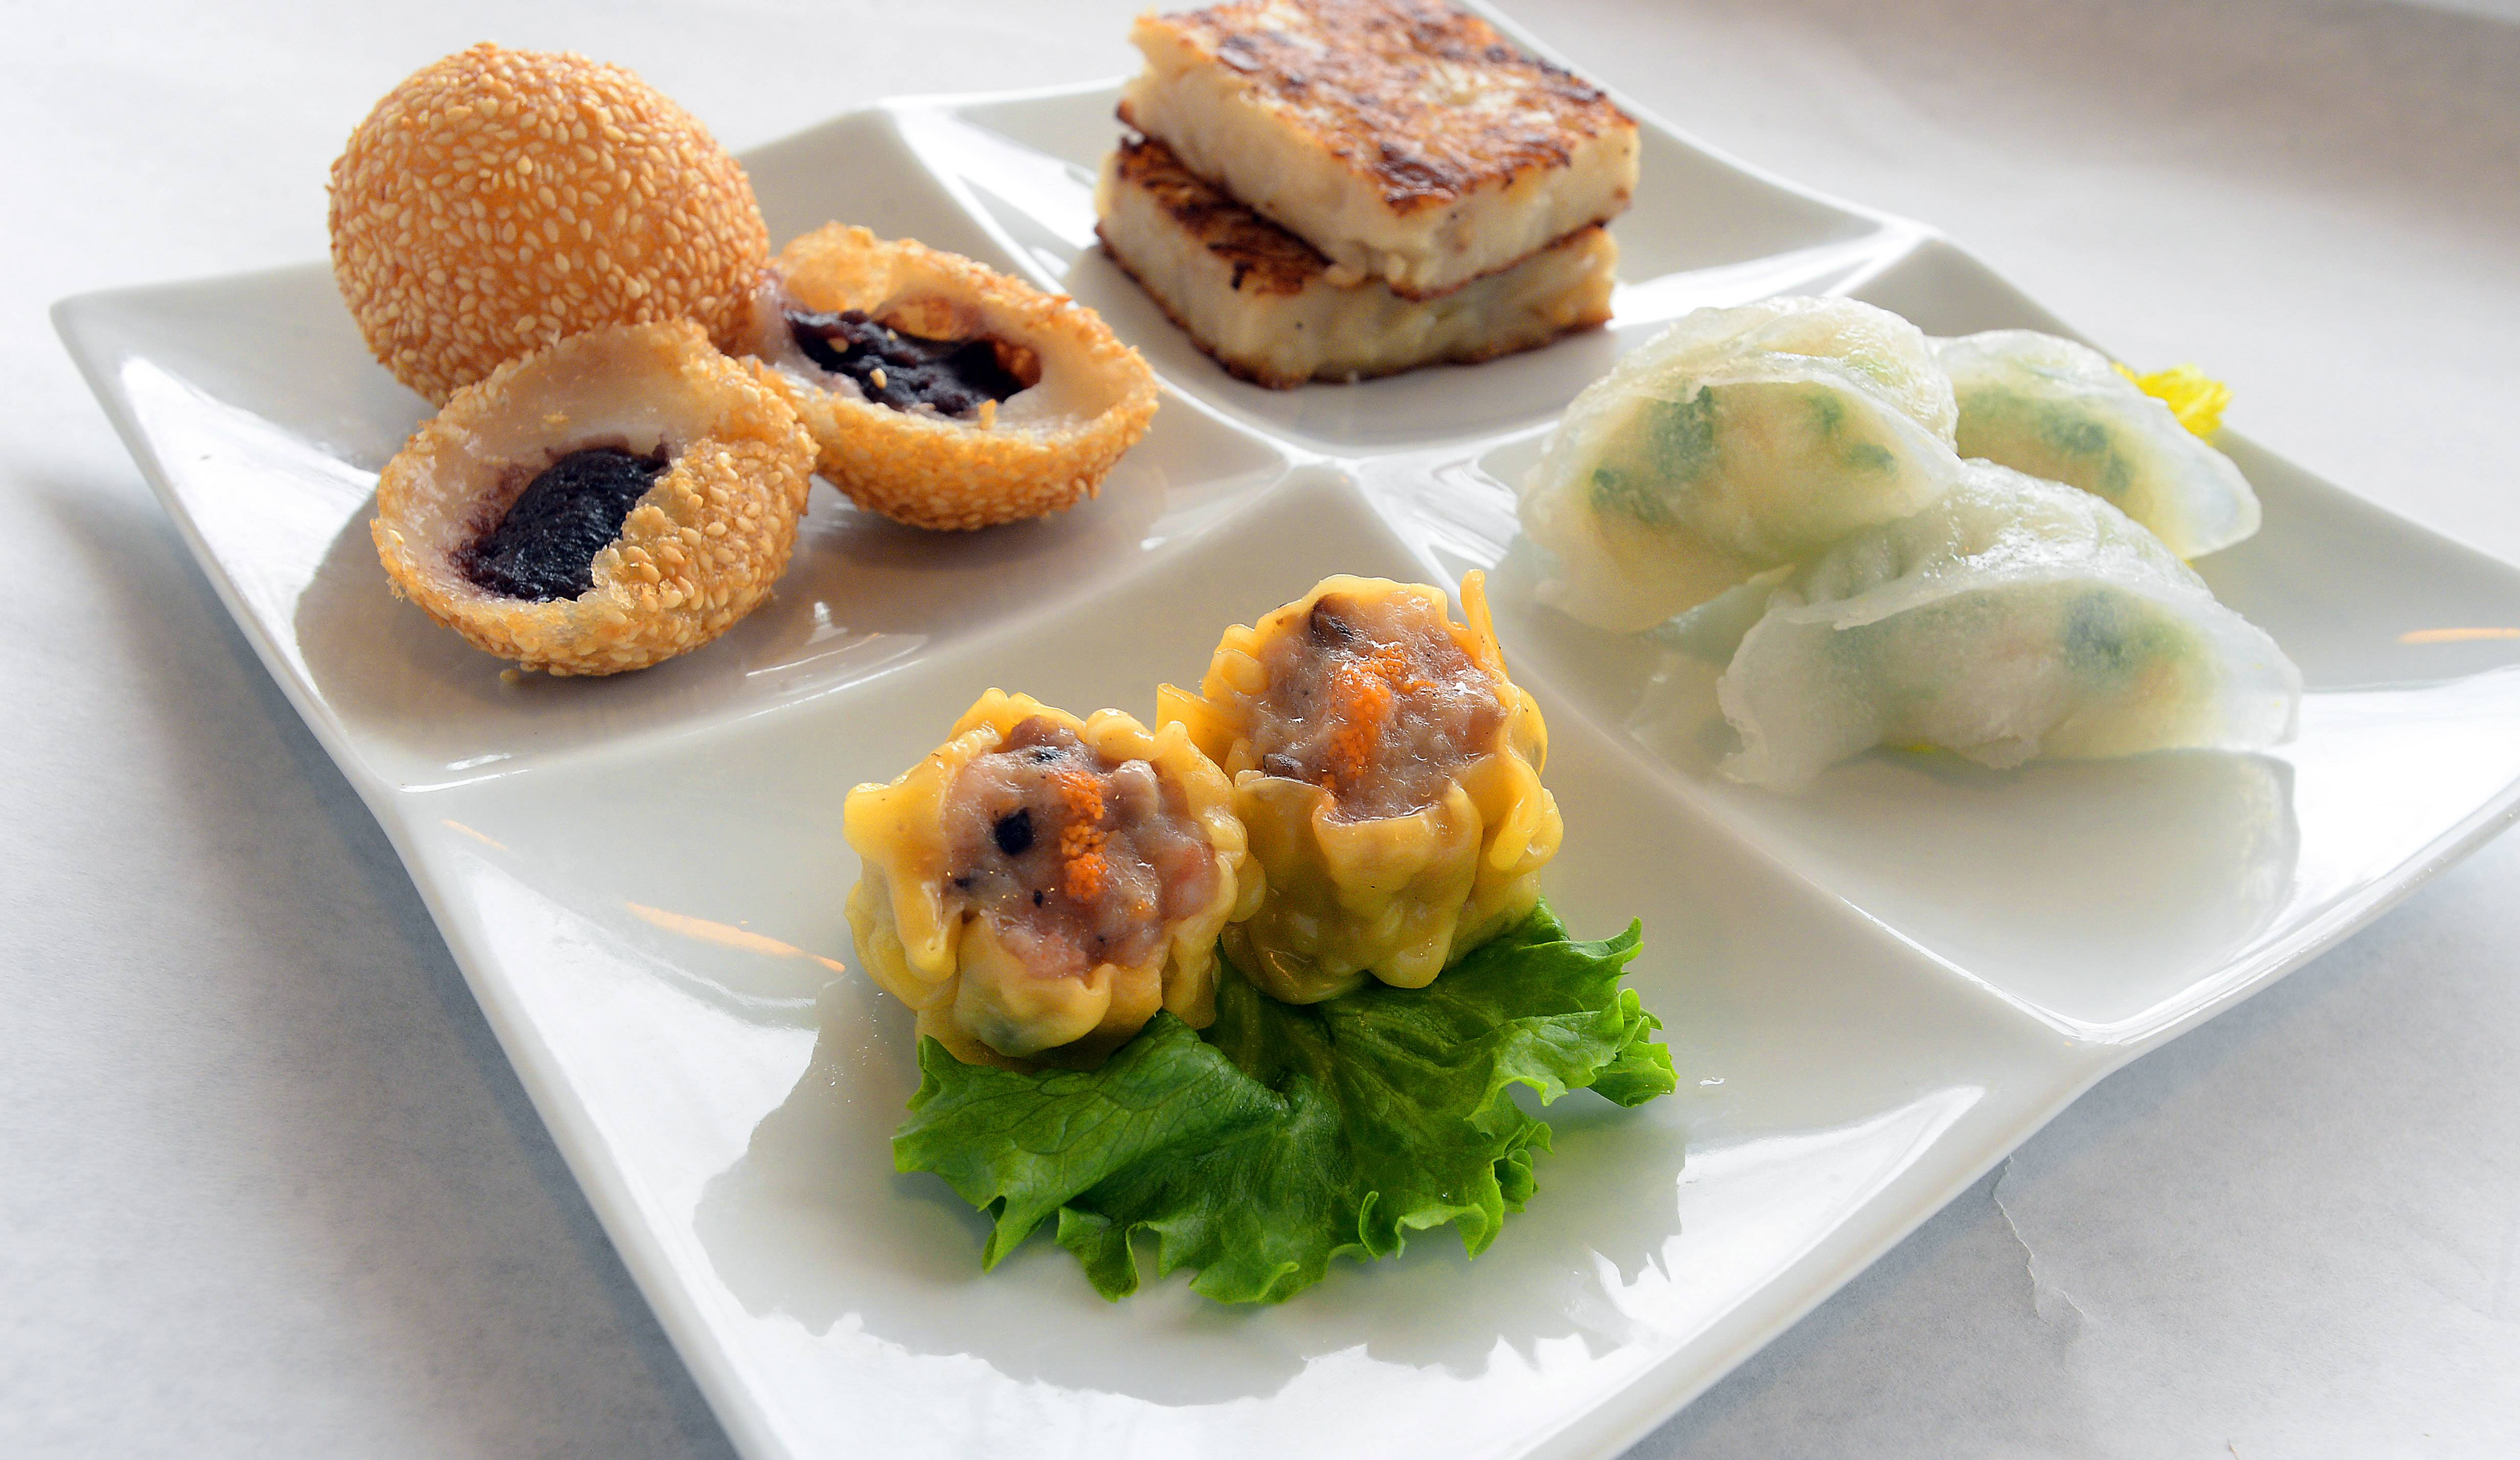 Bistro Chen's dim sum sampler offers the chance to taste a few dishes.